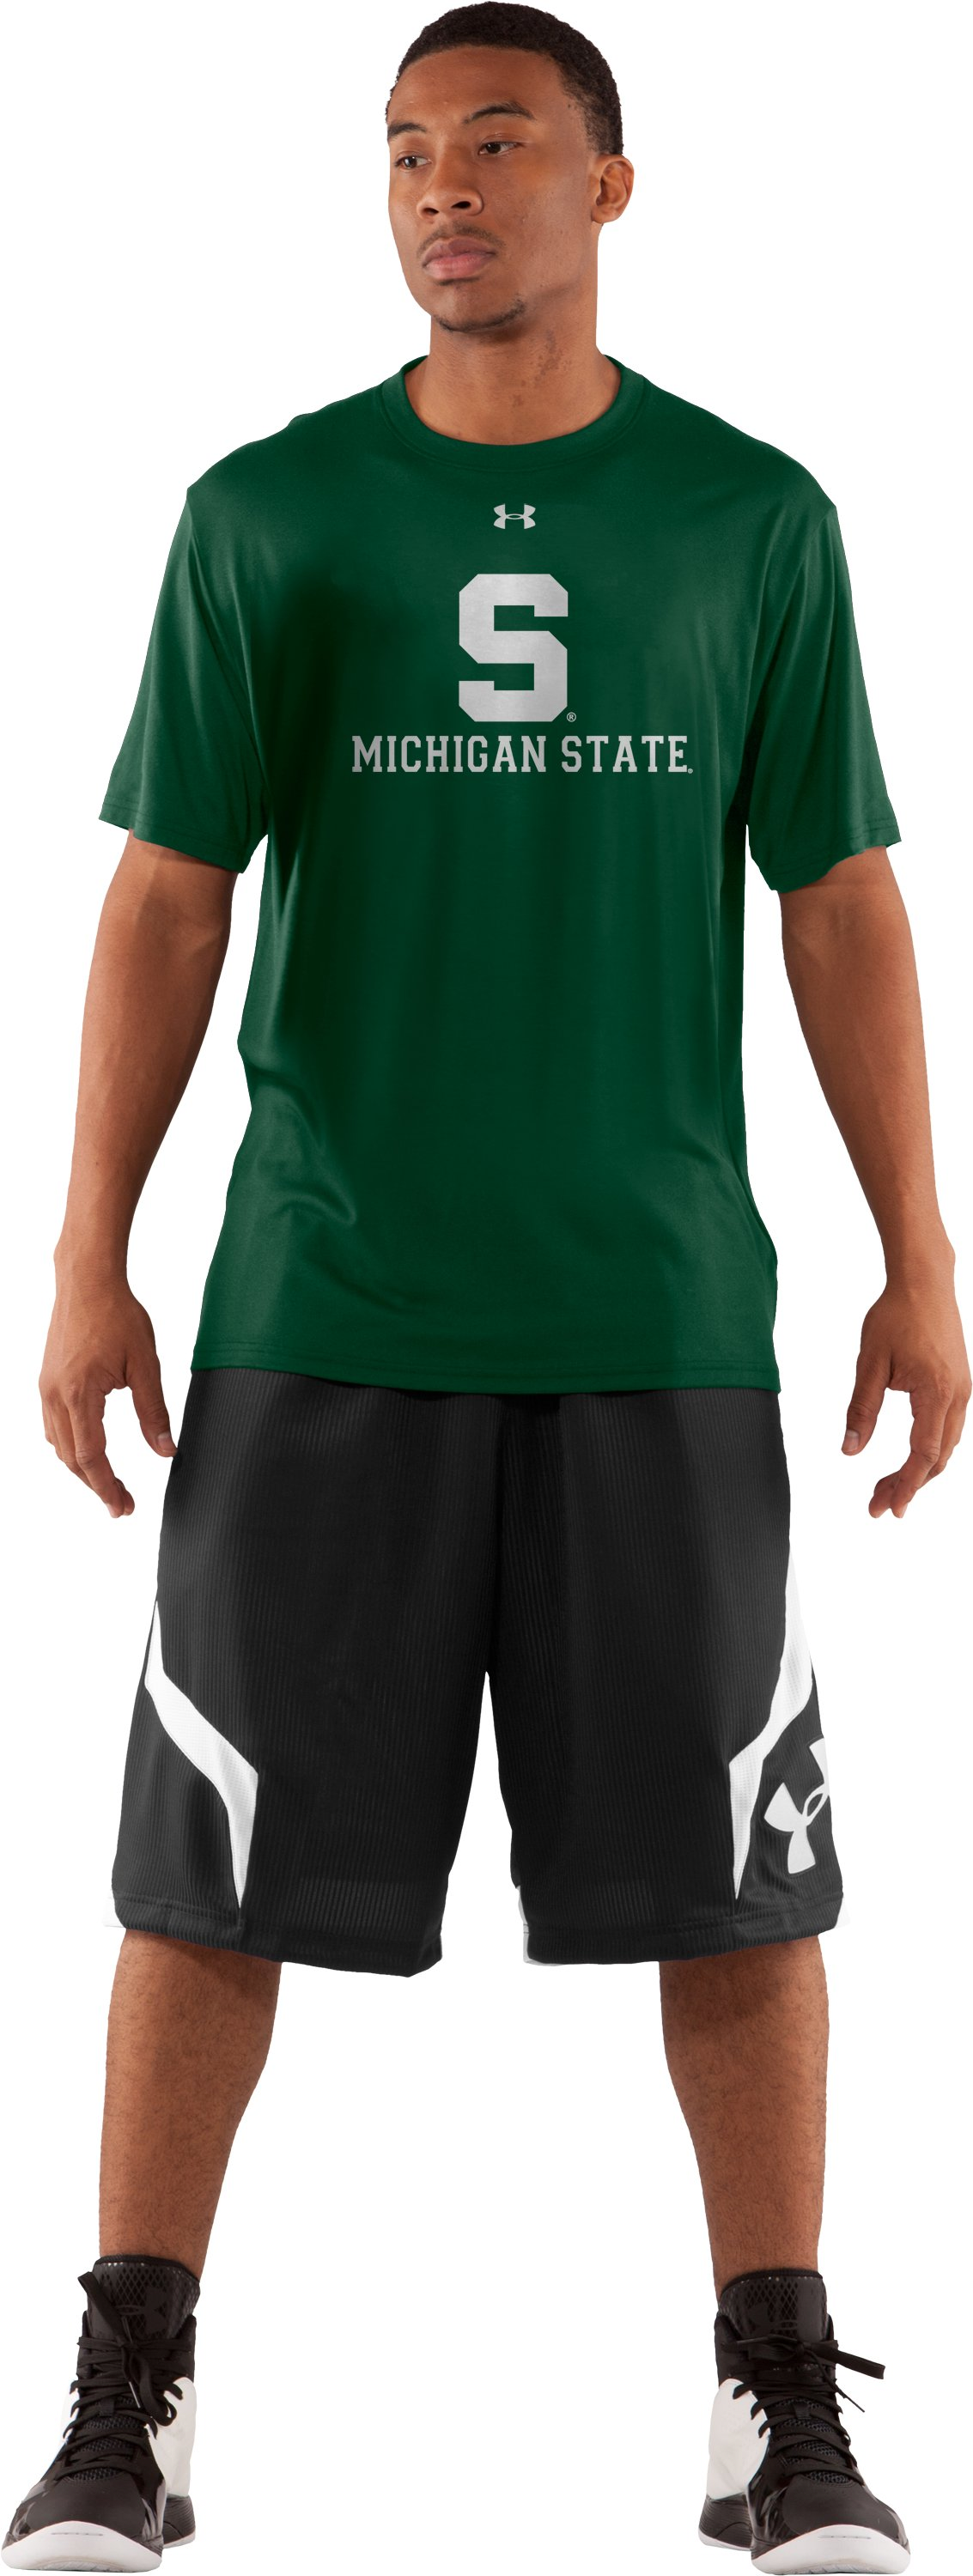 Men's MSU UA T-Shirt, Forest Green